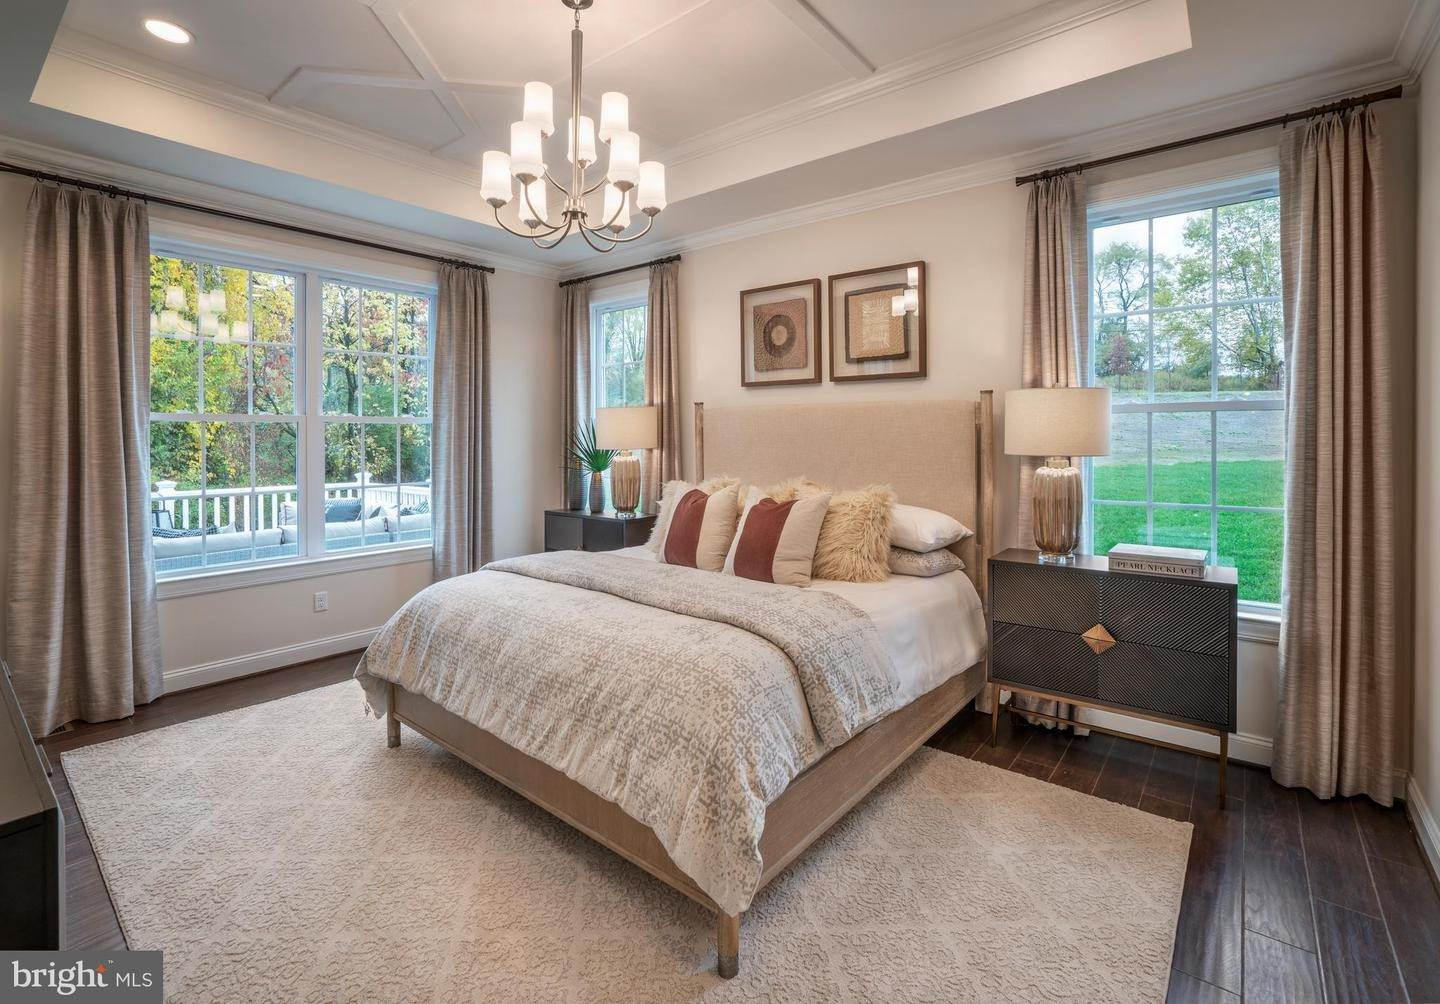 5. Residential for Sale at 820 FOUNDERS WAY #WASHINGTON MODEL East Petersburg, Pennsylvania 17520 United States